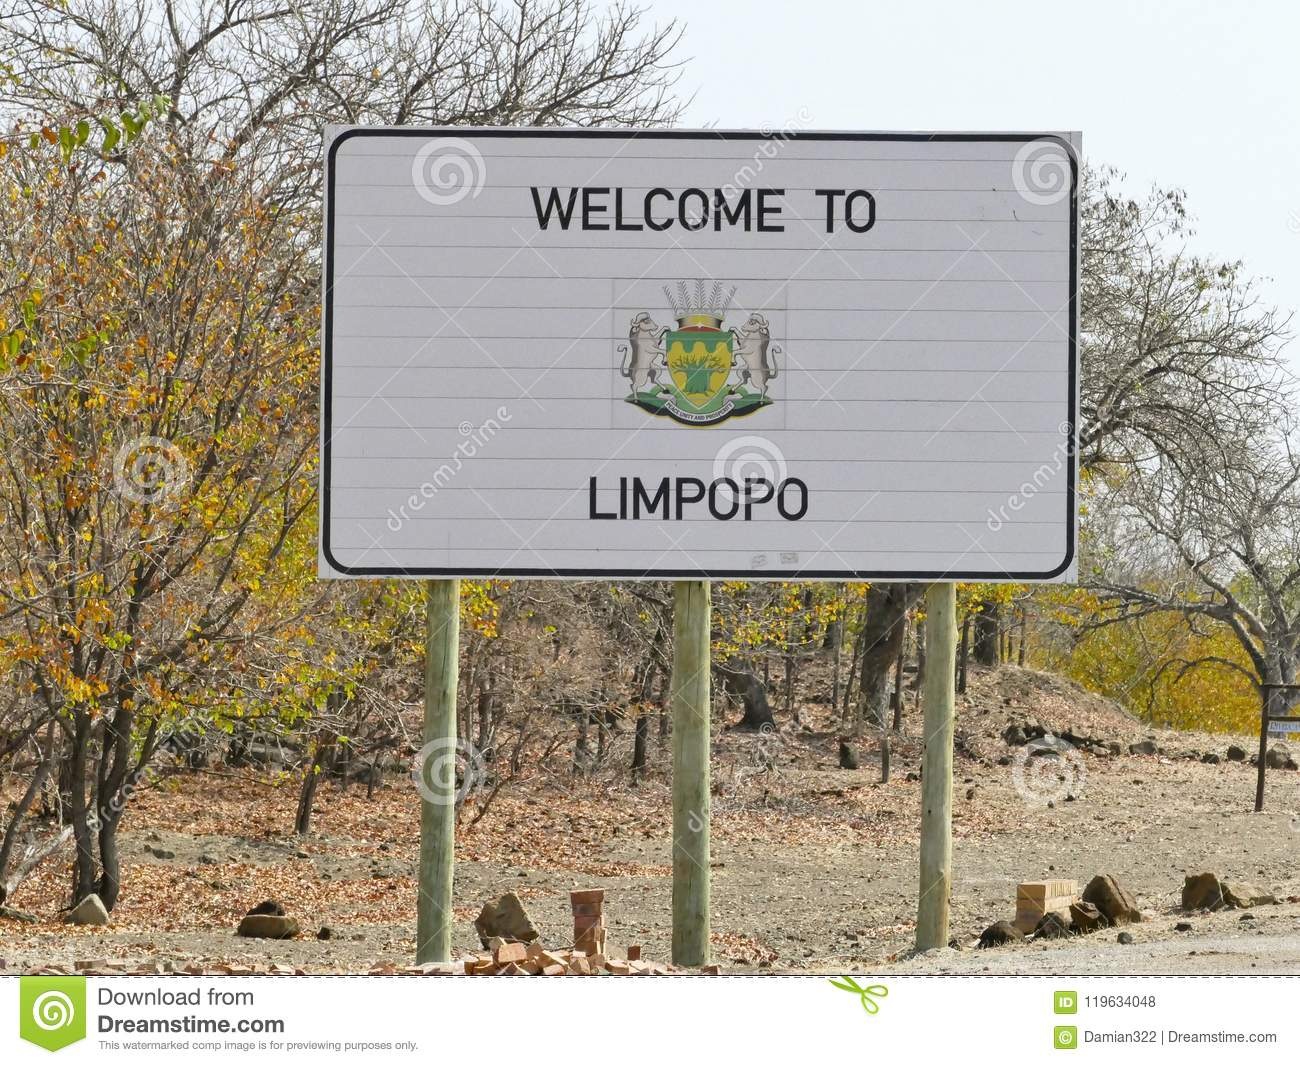 Limpopo sign - travel destination in Africa